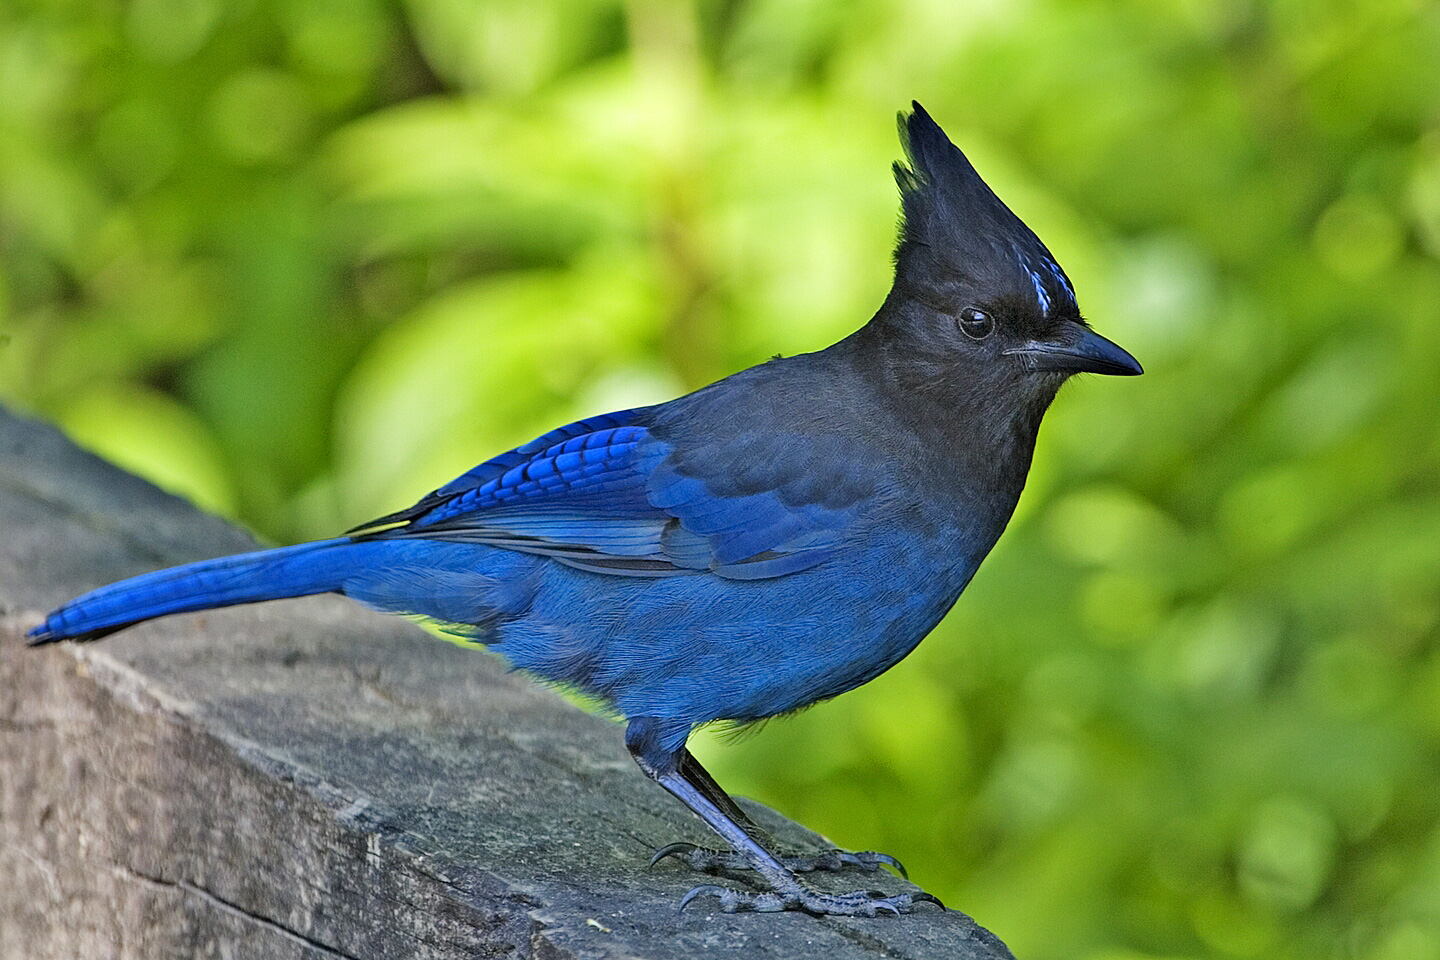 http://upload.wikimedia.org/wikipedia/commons/e/ea/Stellers_jay_-_natures_pics.jpg